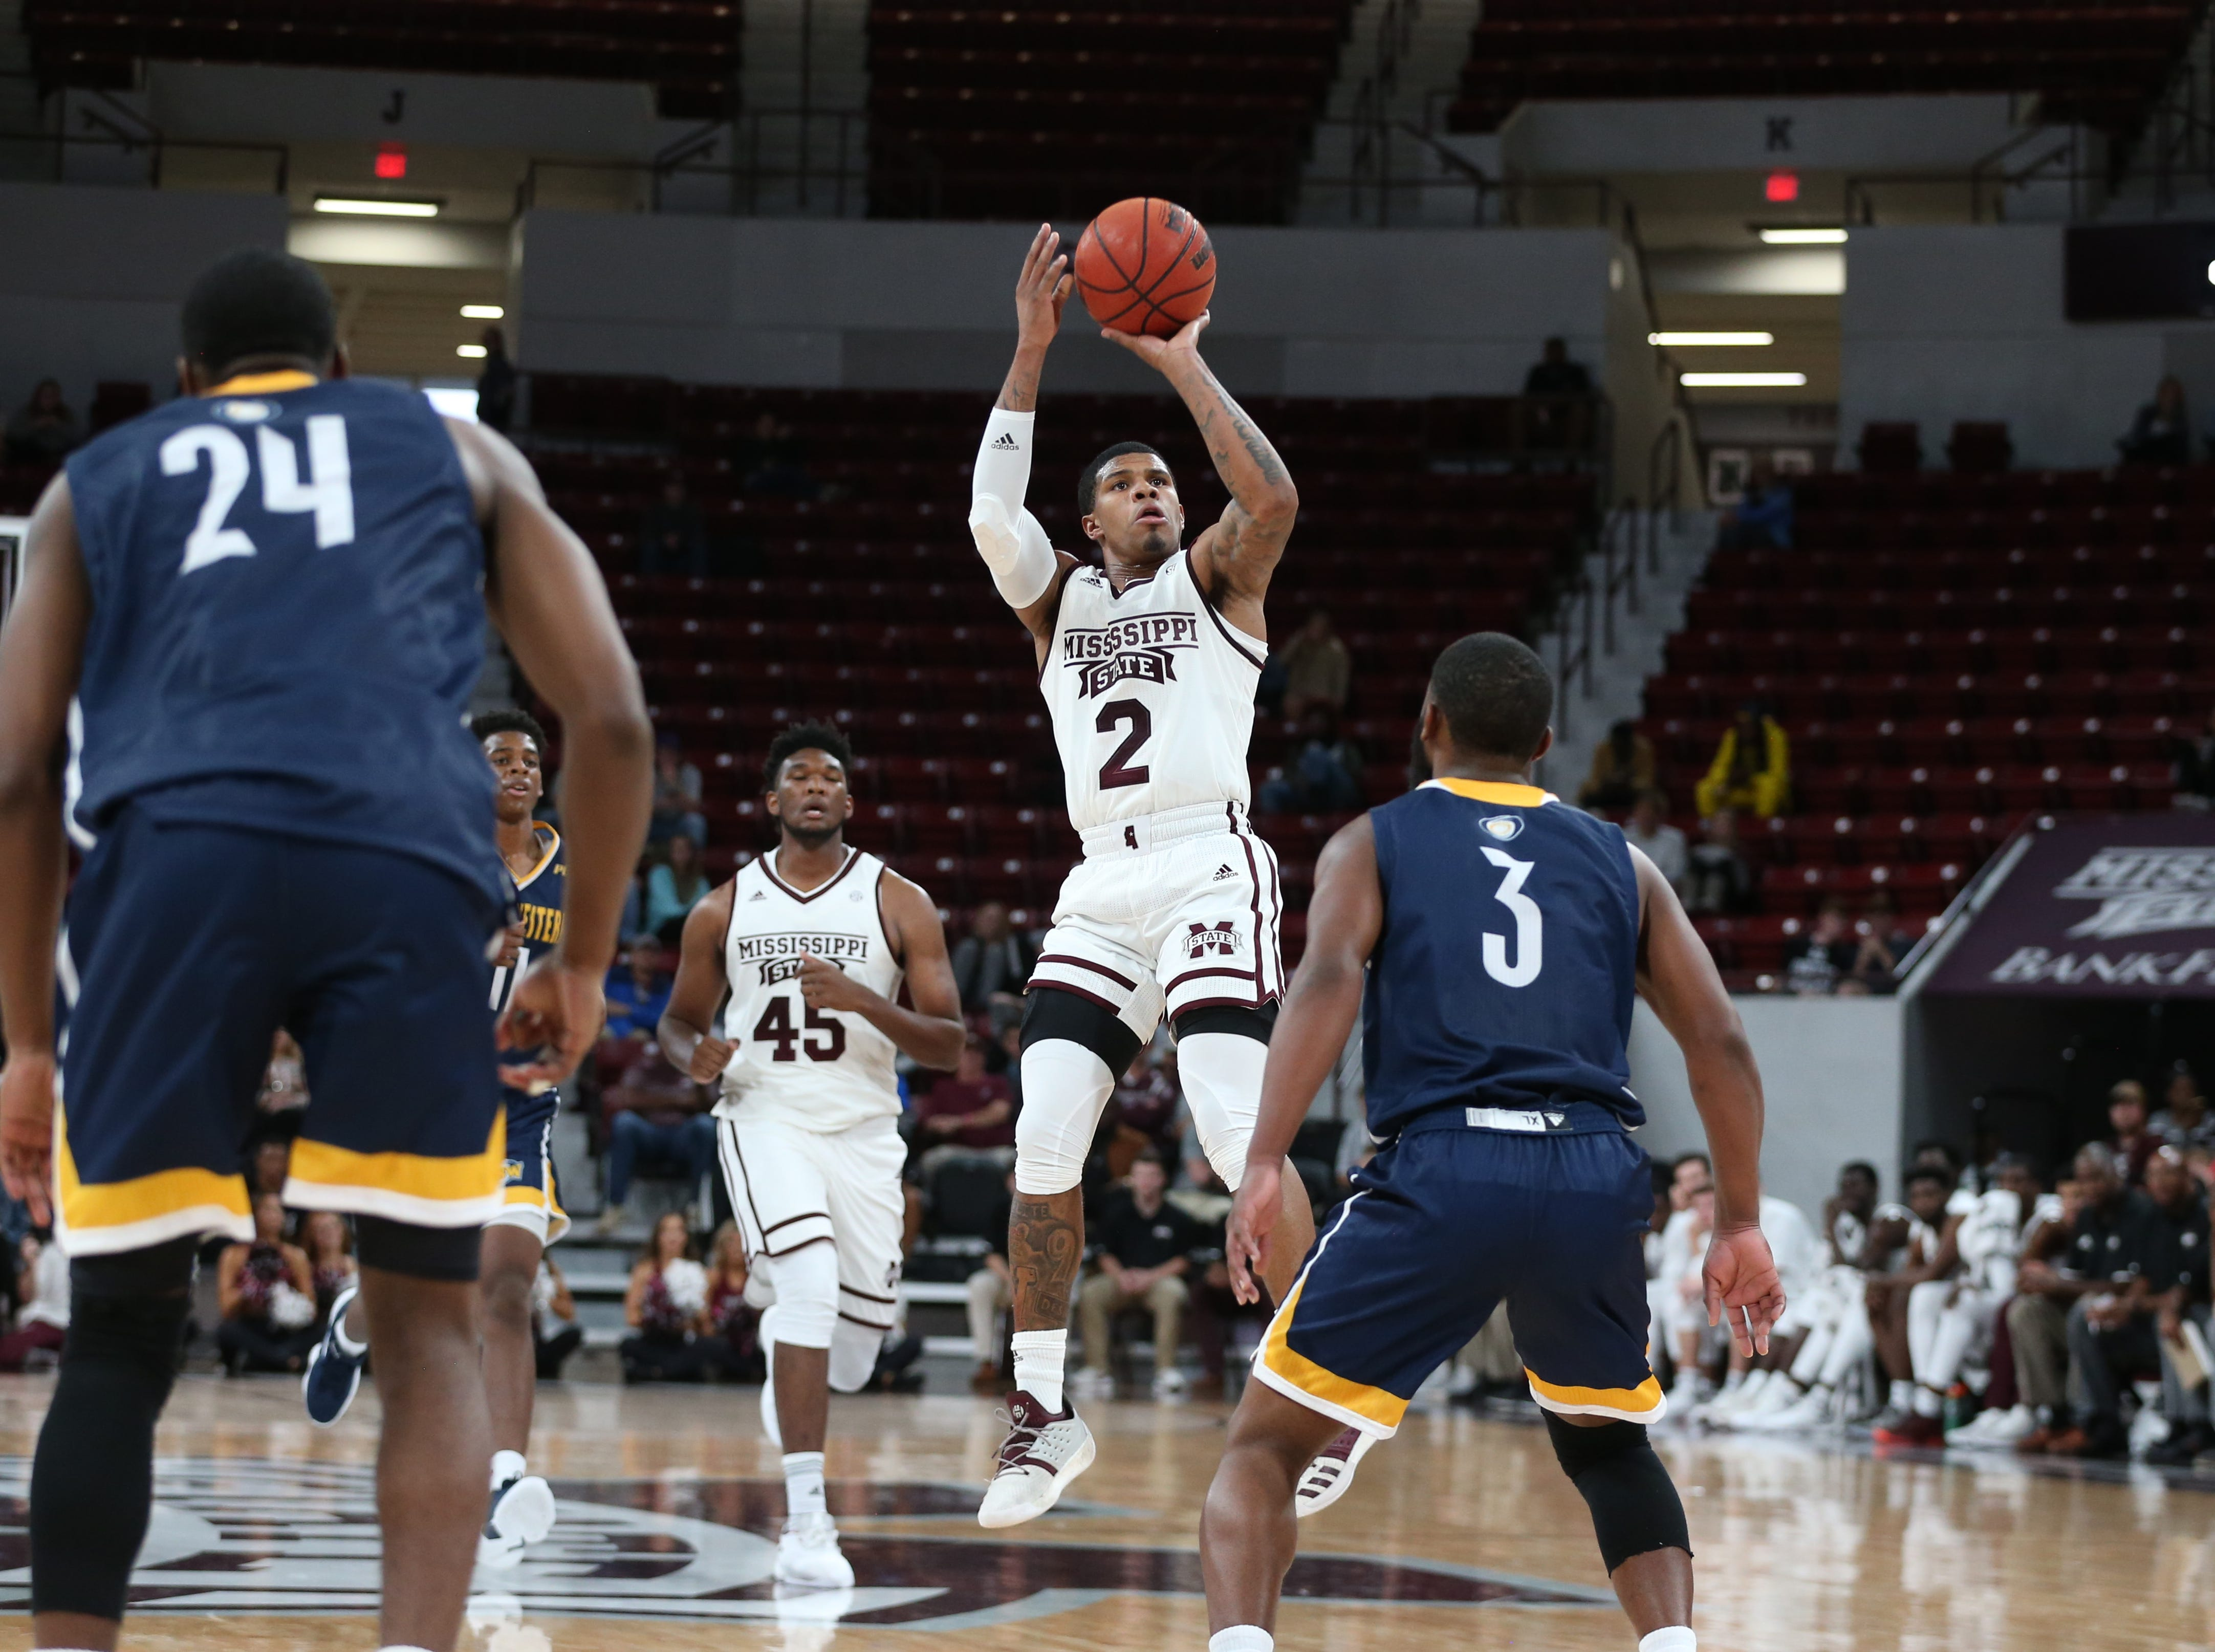 Lamar Peters' brilliant performances is key to Mississippi State's success this season